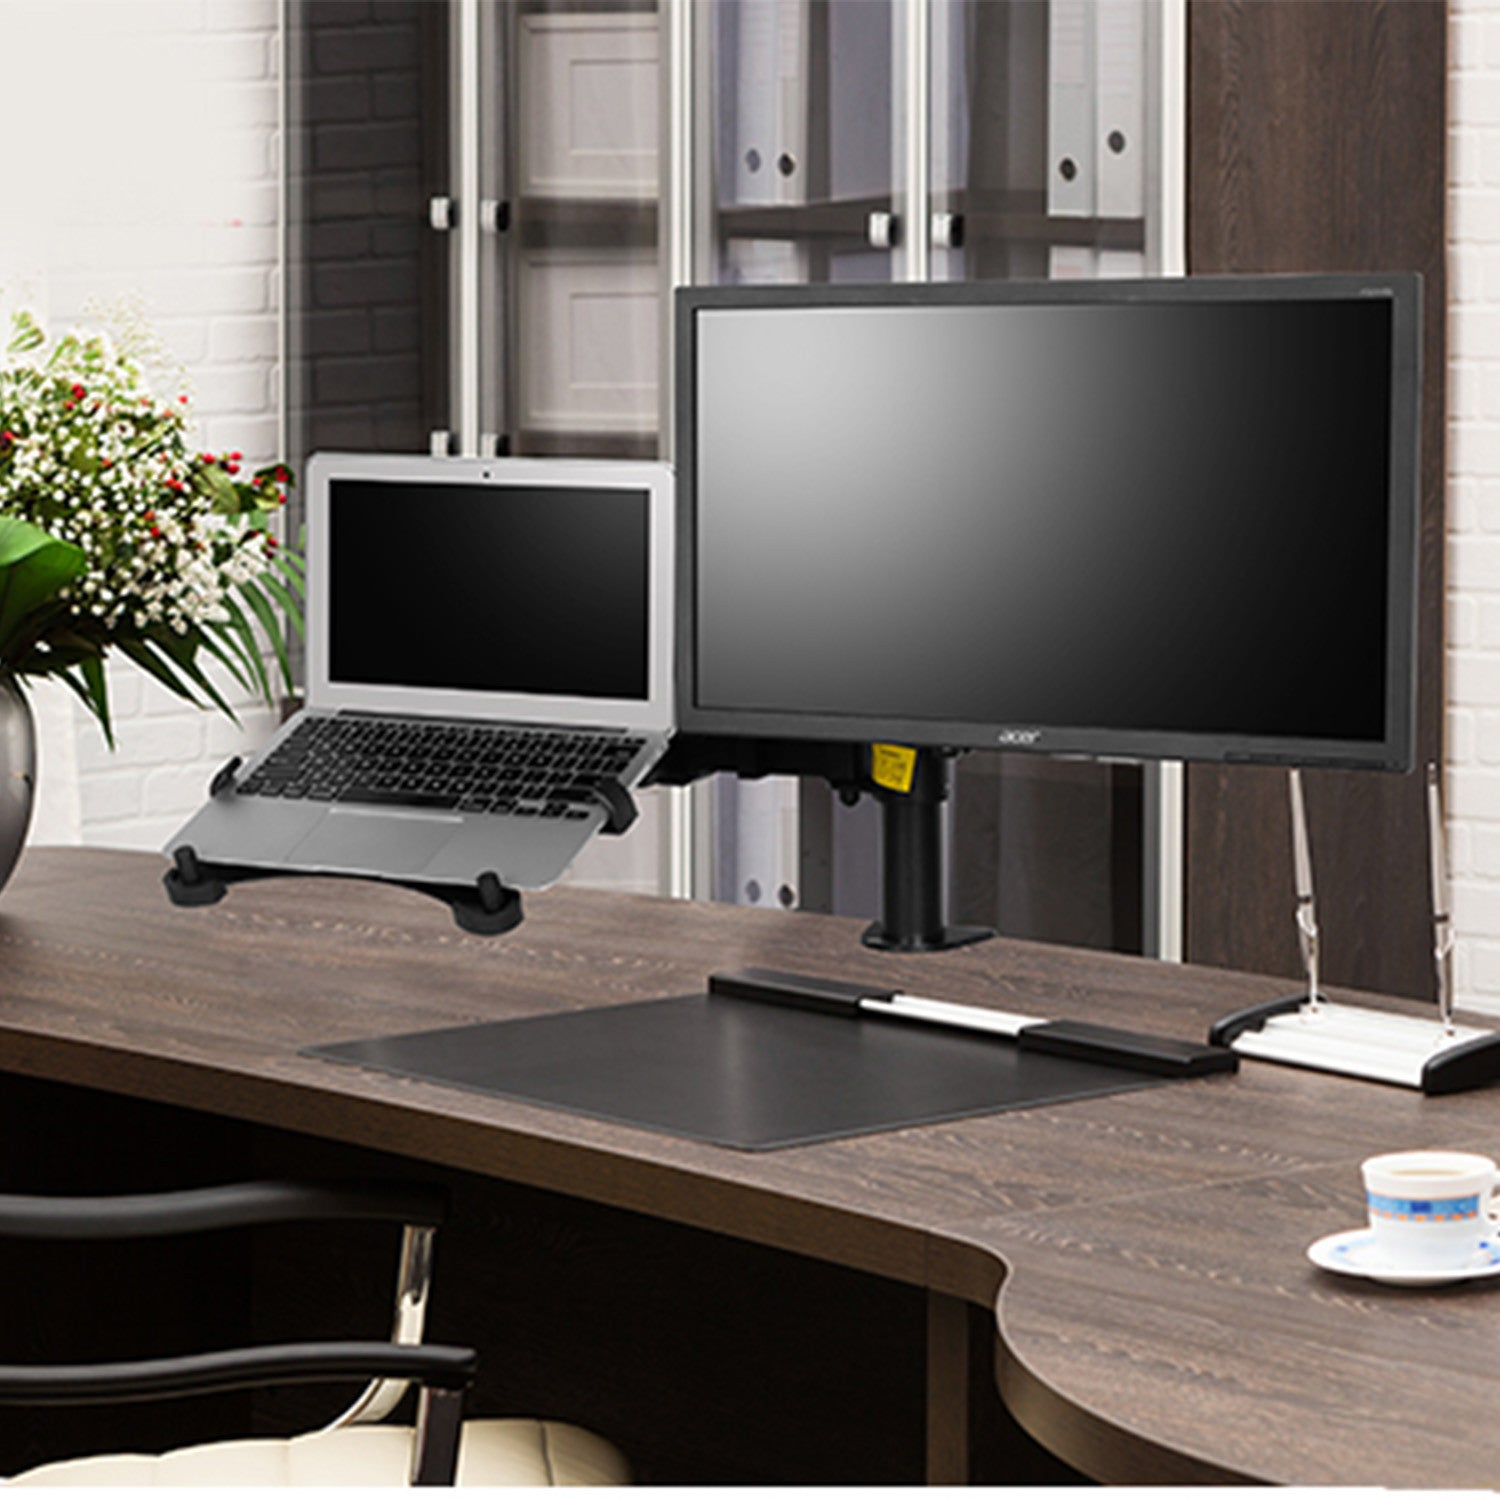 Thingyclub Adjustable Computer Monitor Arm Desktop Mount Stand